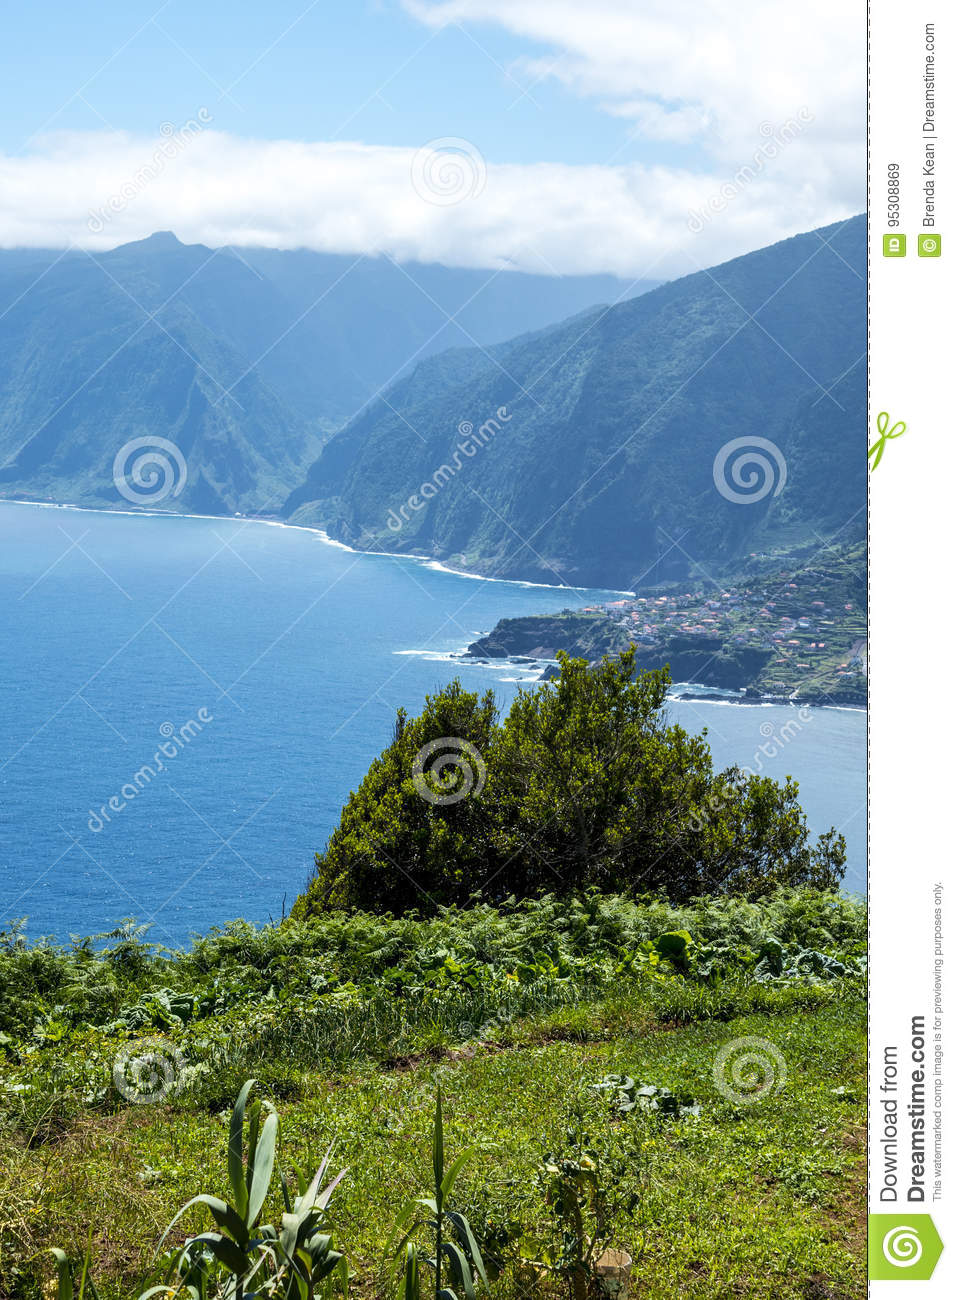 Image by stephen davis via wikimedia commons ( cc by 2.0 ). The North West Coast Where The Mountains In The North Of The Island Of Madeira Meet The Atlantic Ocean Editorial Stock Image Image Of Mists Cliffs 95308869